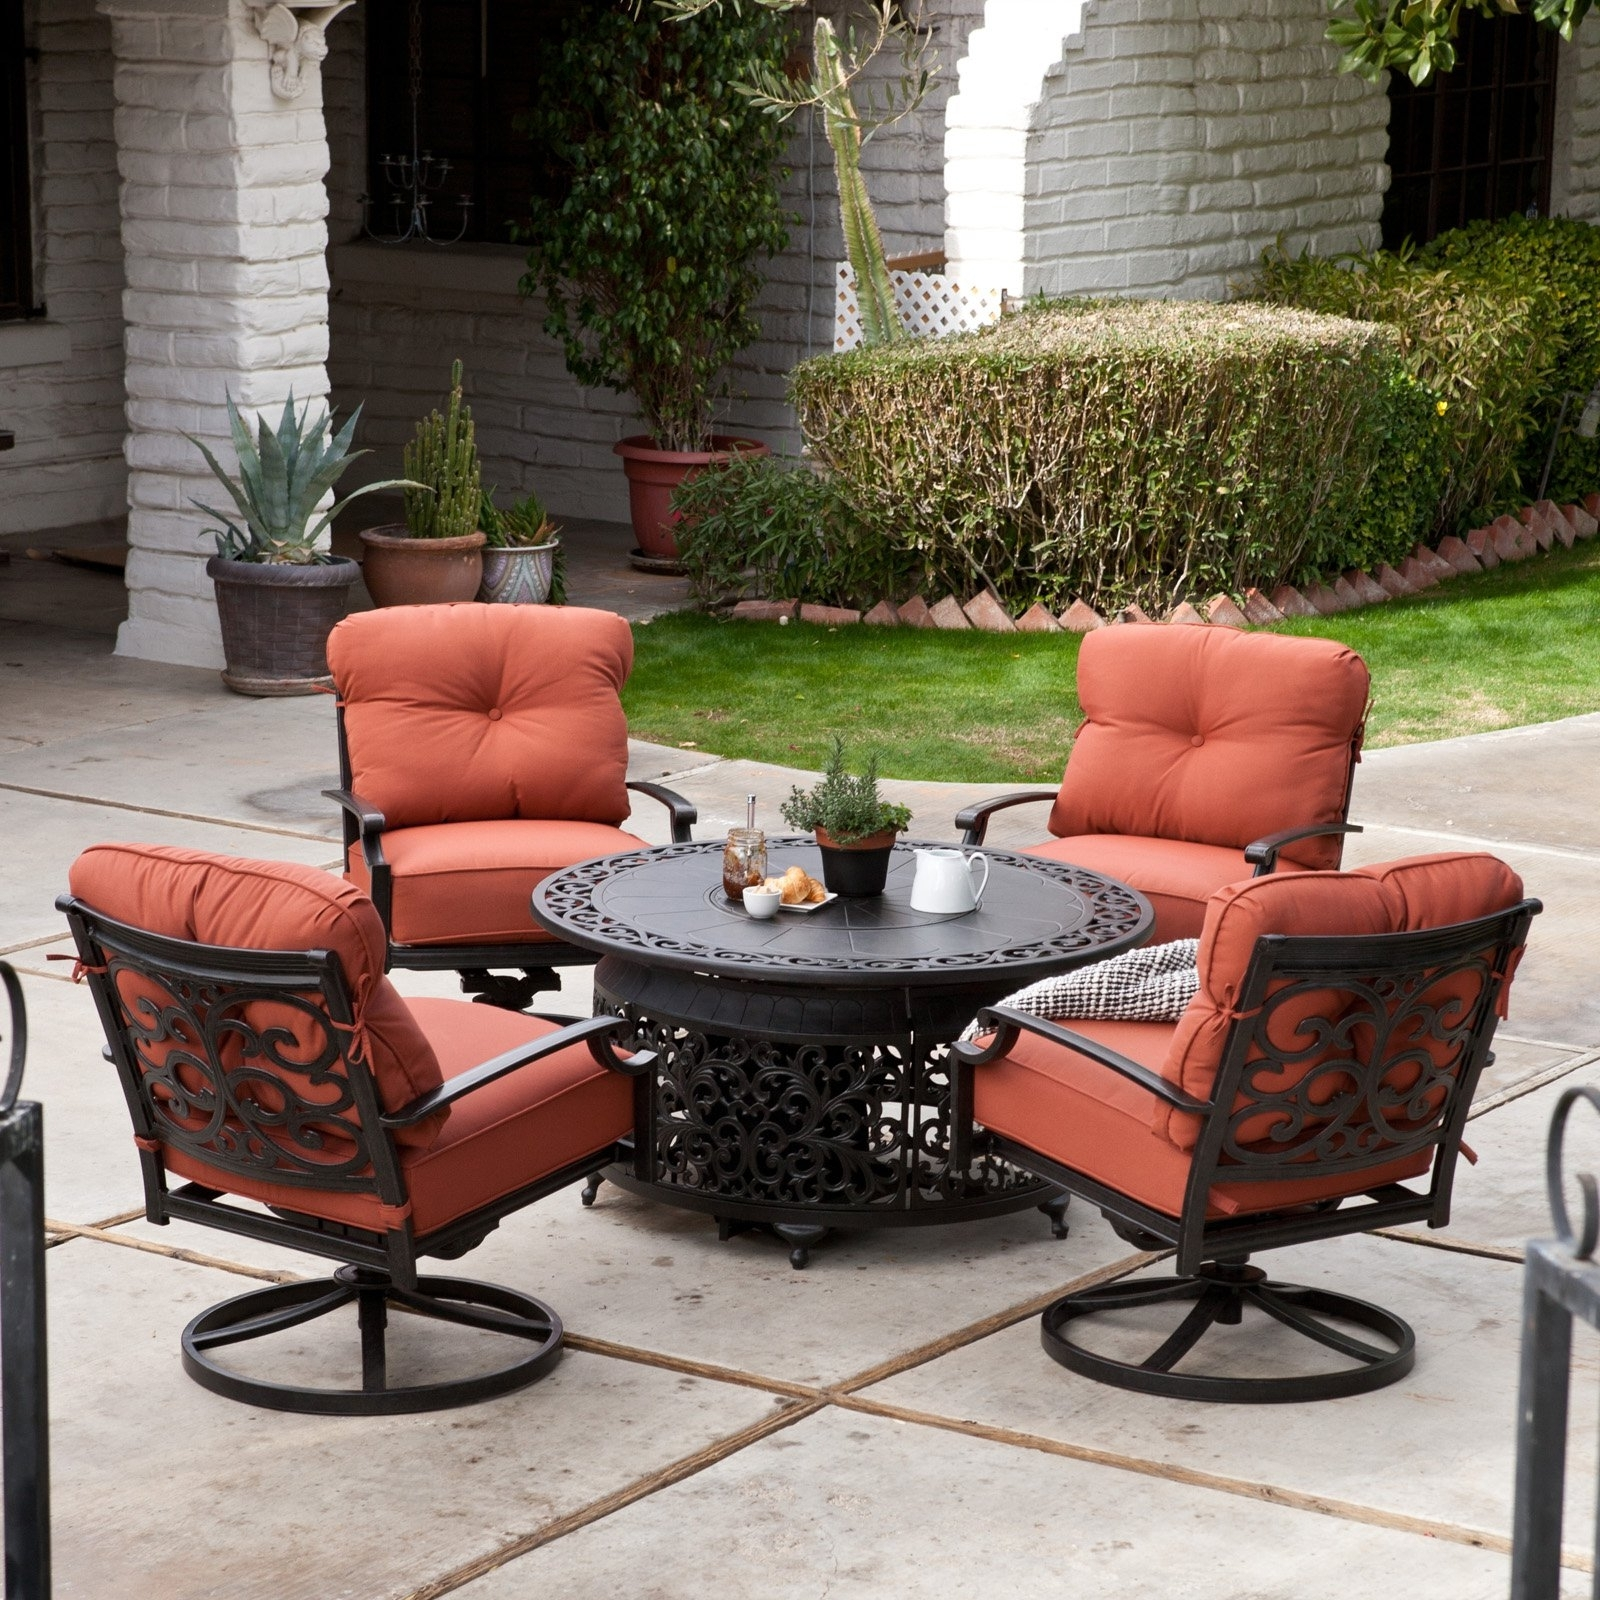 Patio Furniture At Sears (View 17 of 20)